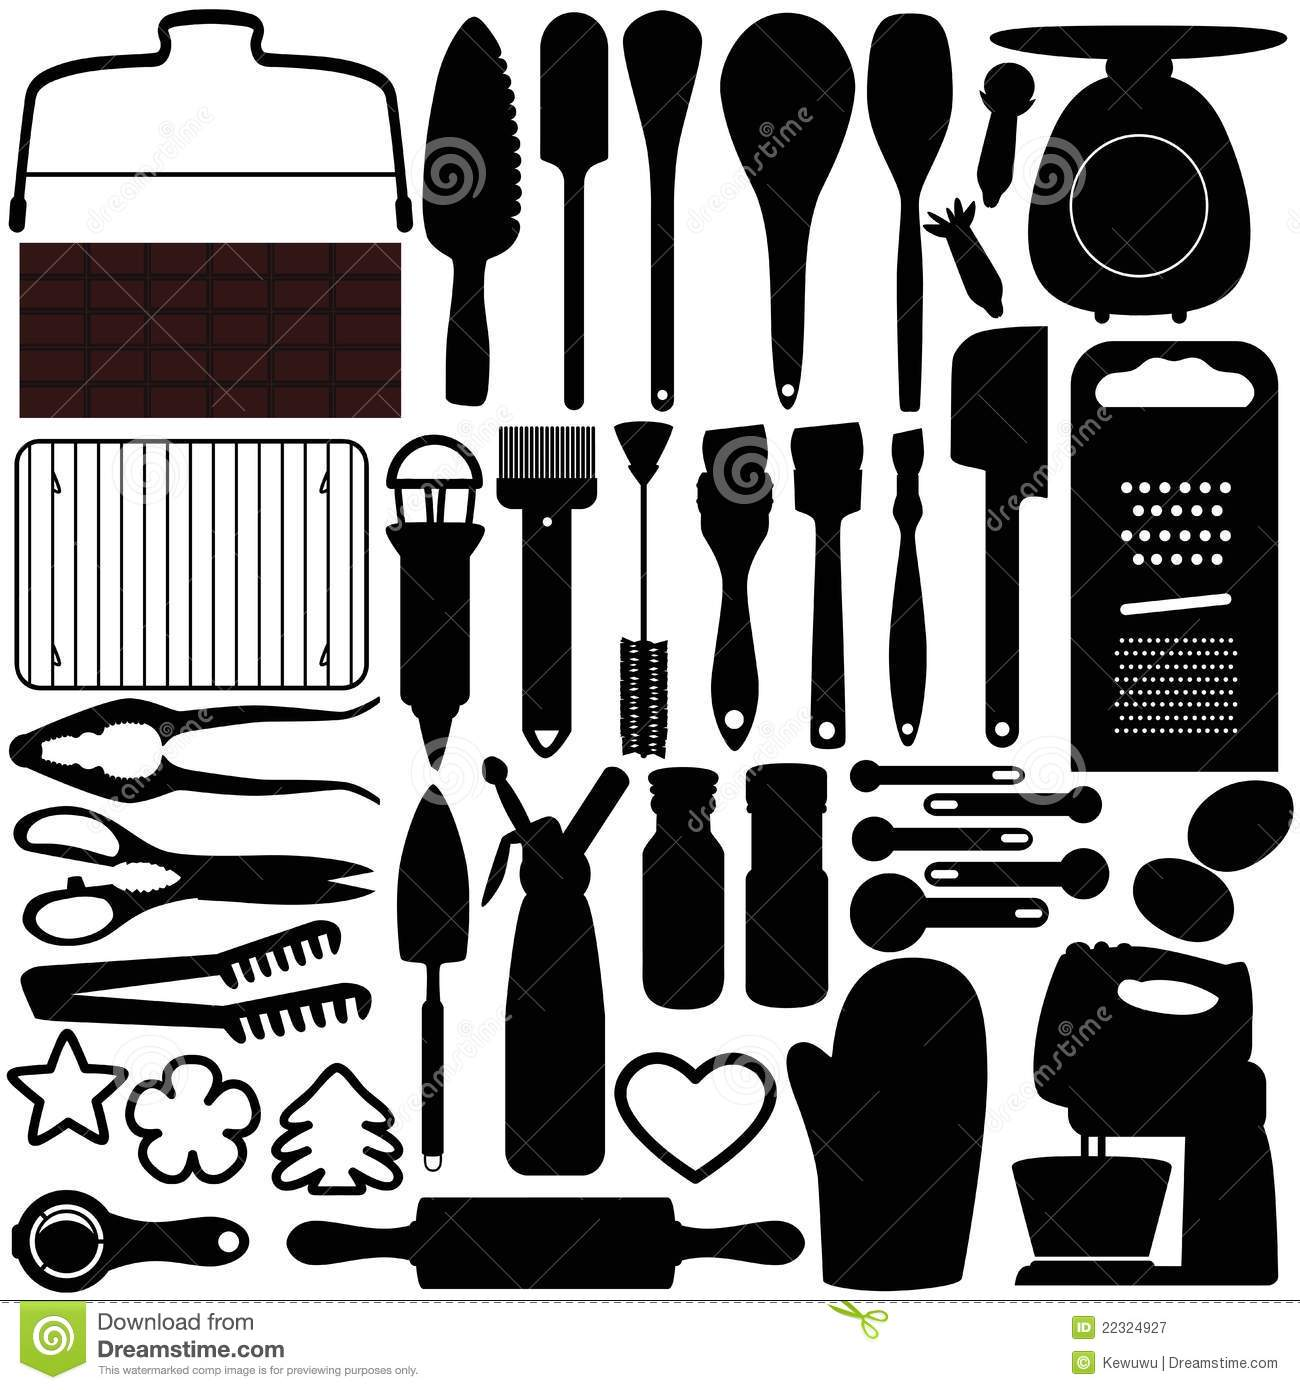 Silhouettes Of Cooking, Baking Tools Royalty Free Stock